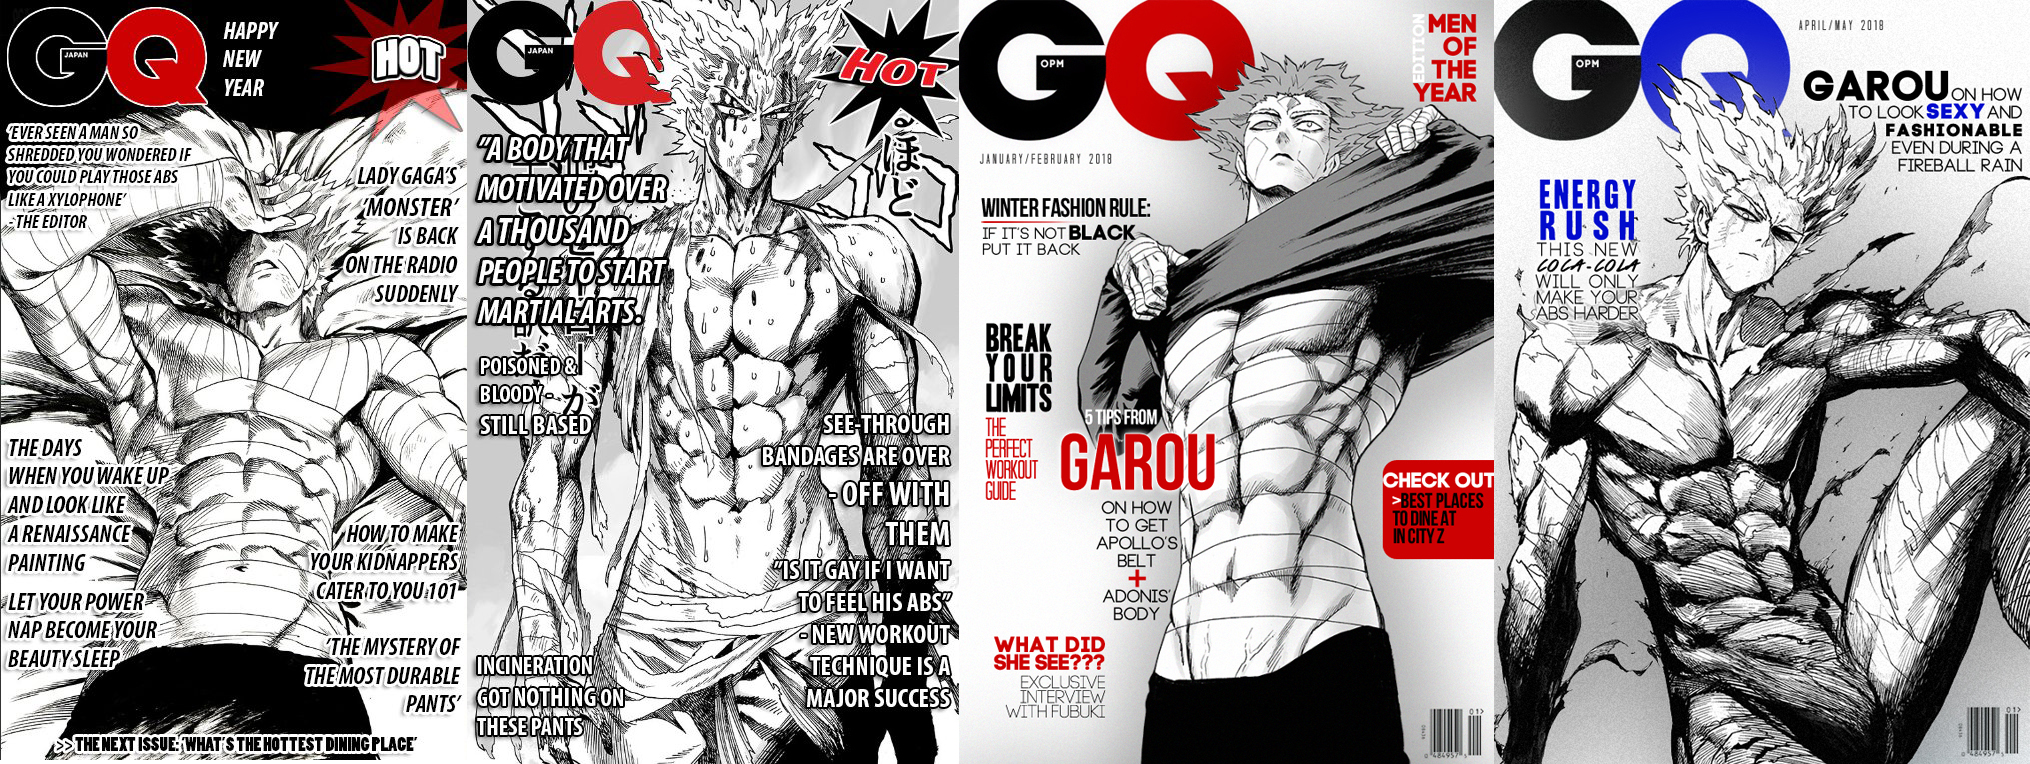 Garou S Magazine Covers One Punch Man Know Your Meme